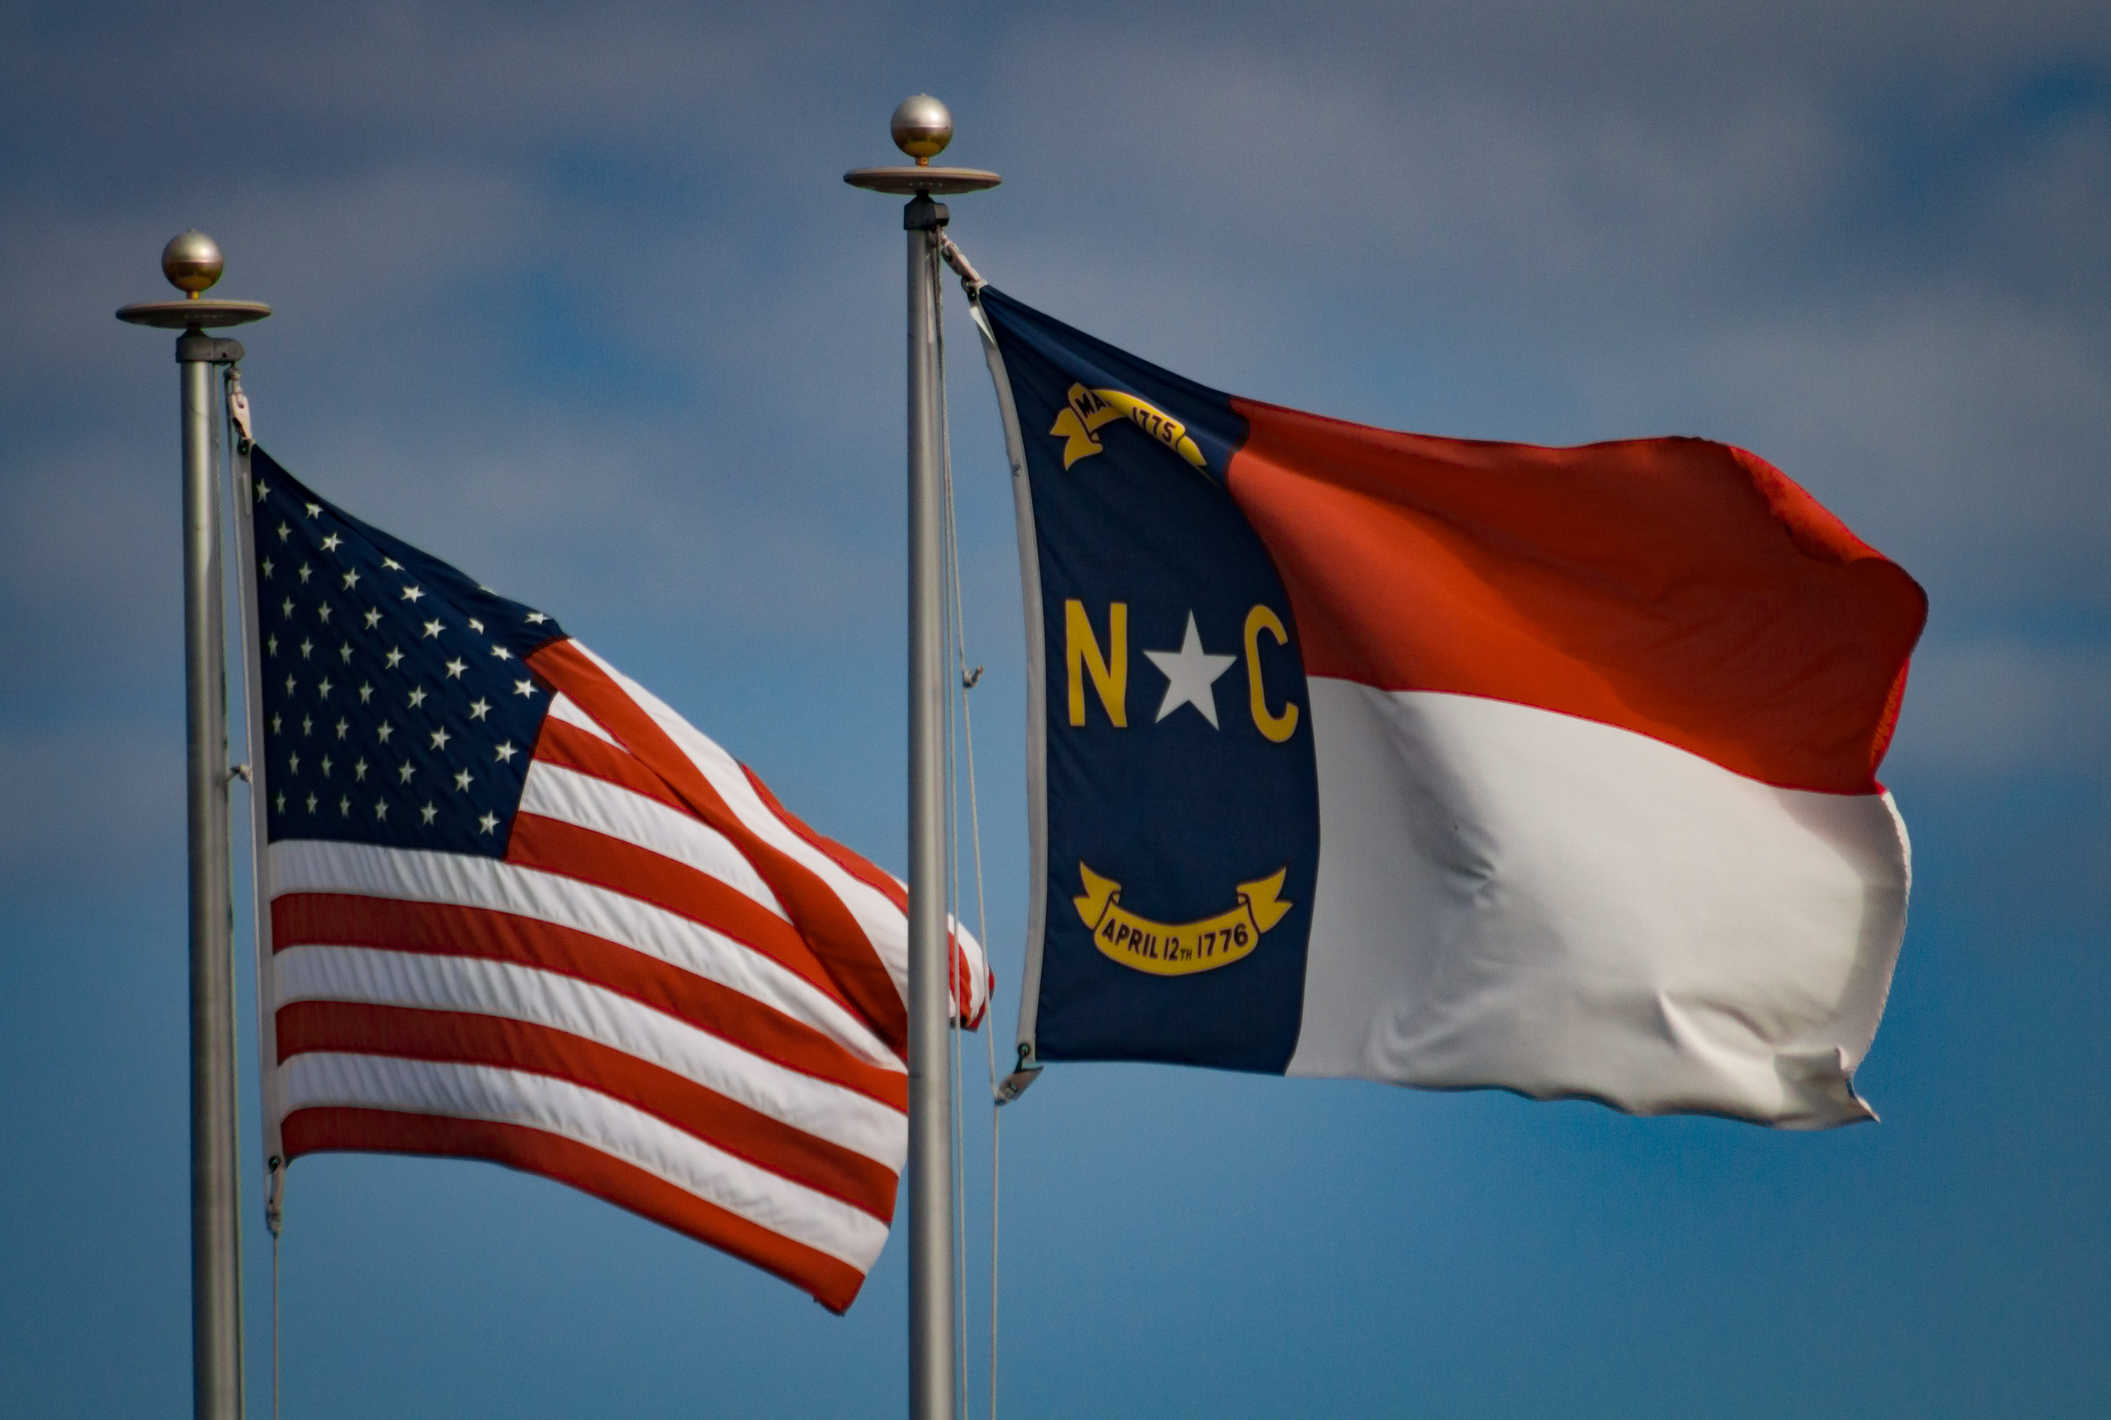 North Carolina and American flags (Getty Images)